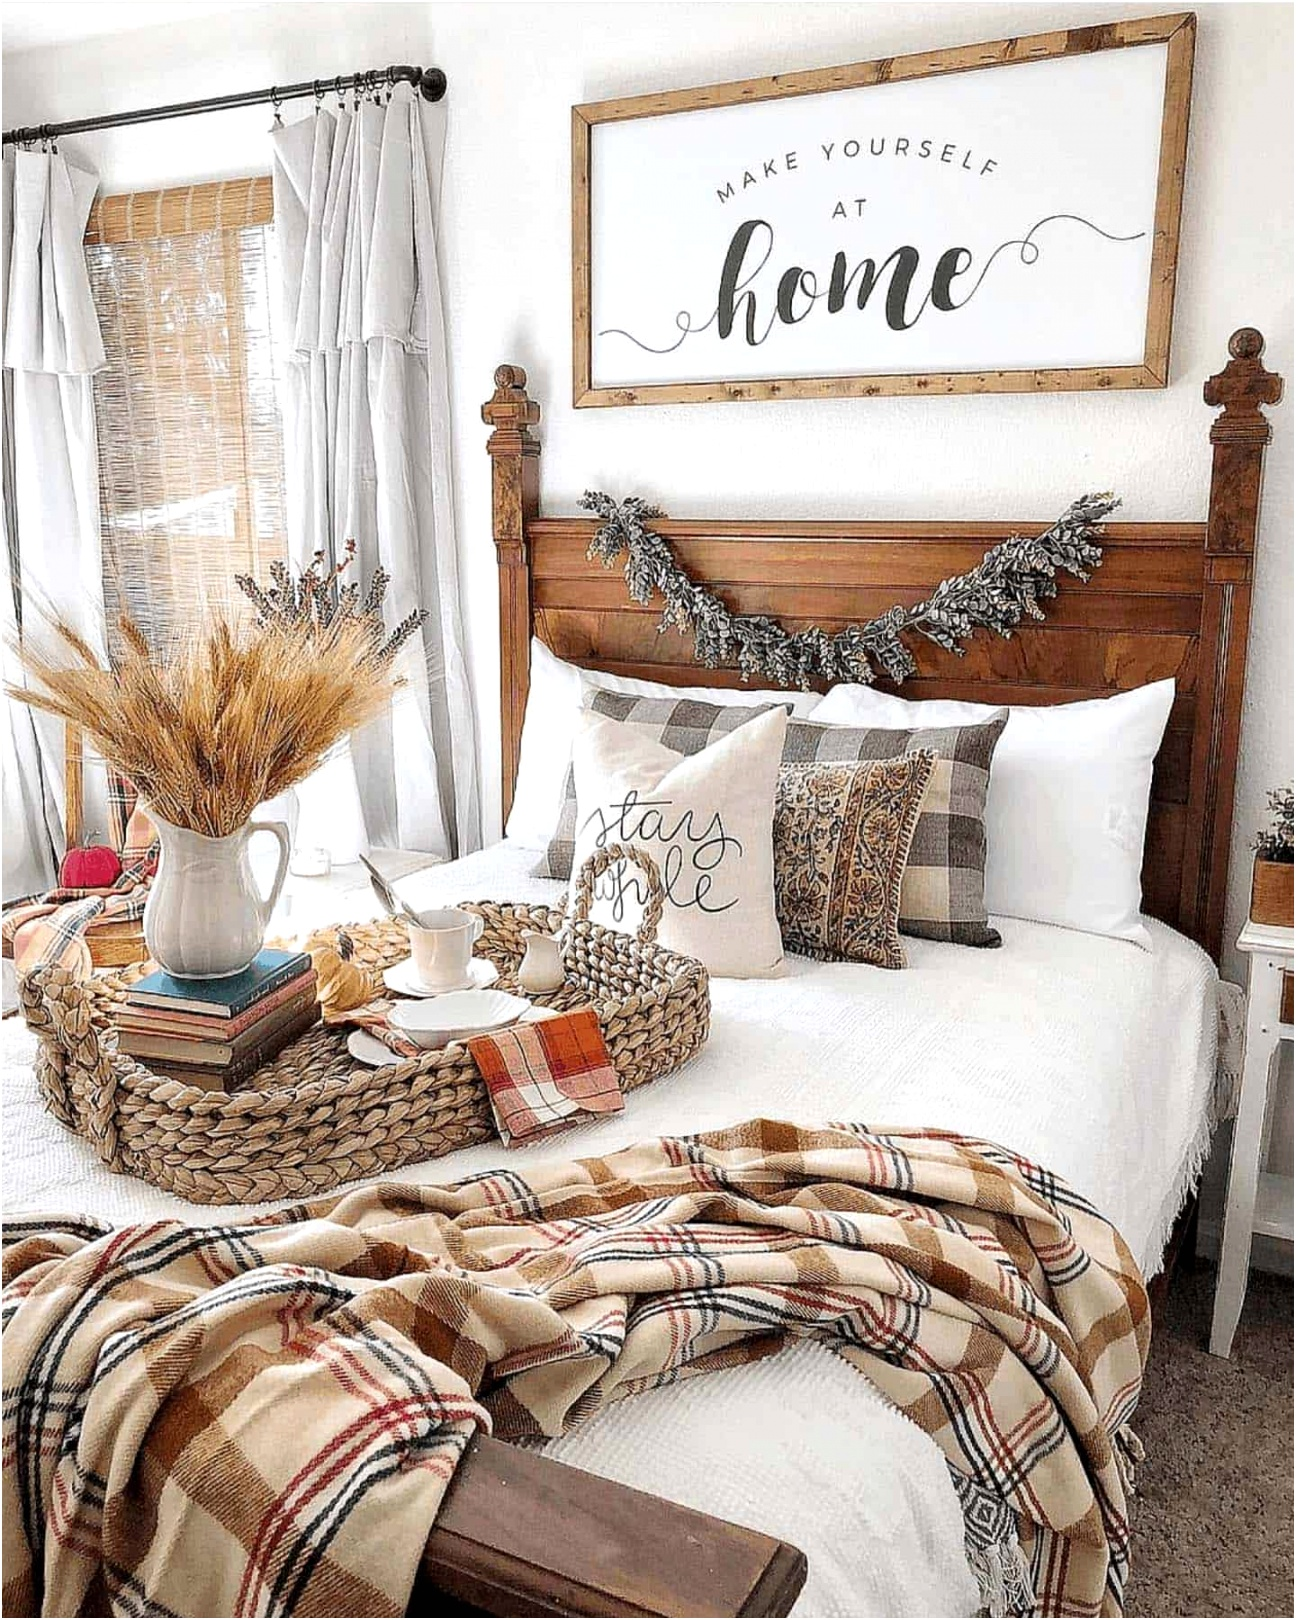 Bedroom Decorating Ideas For Autumn 06 1 Kindesign